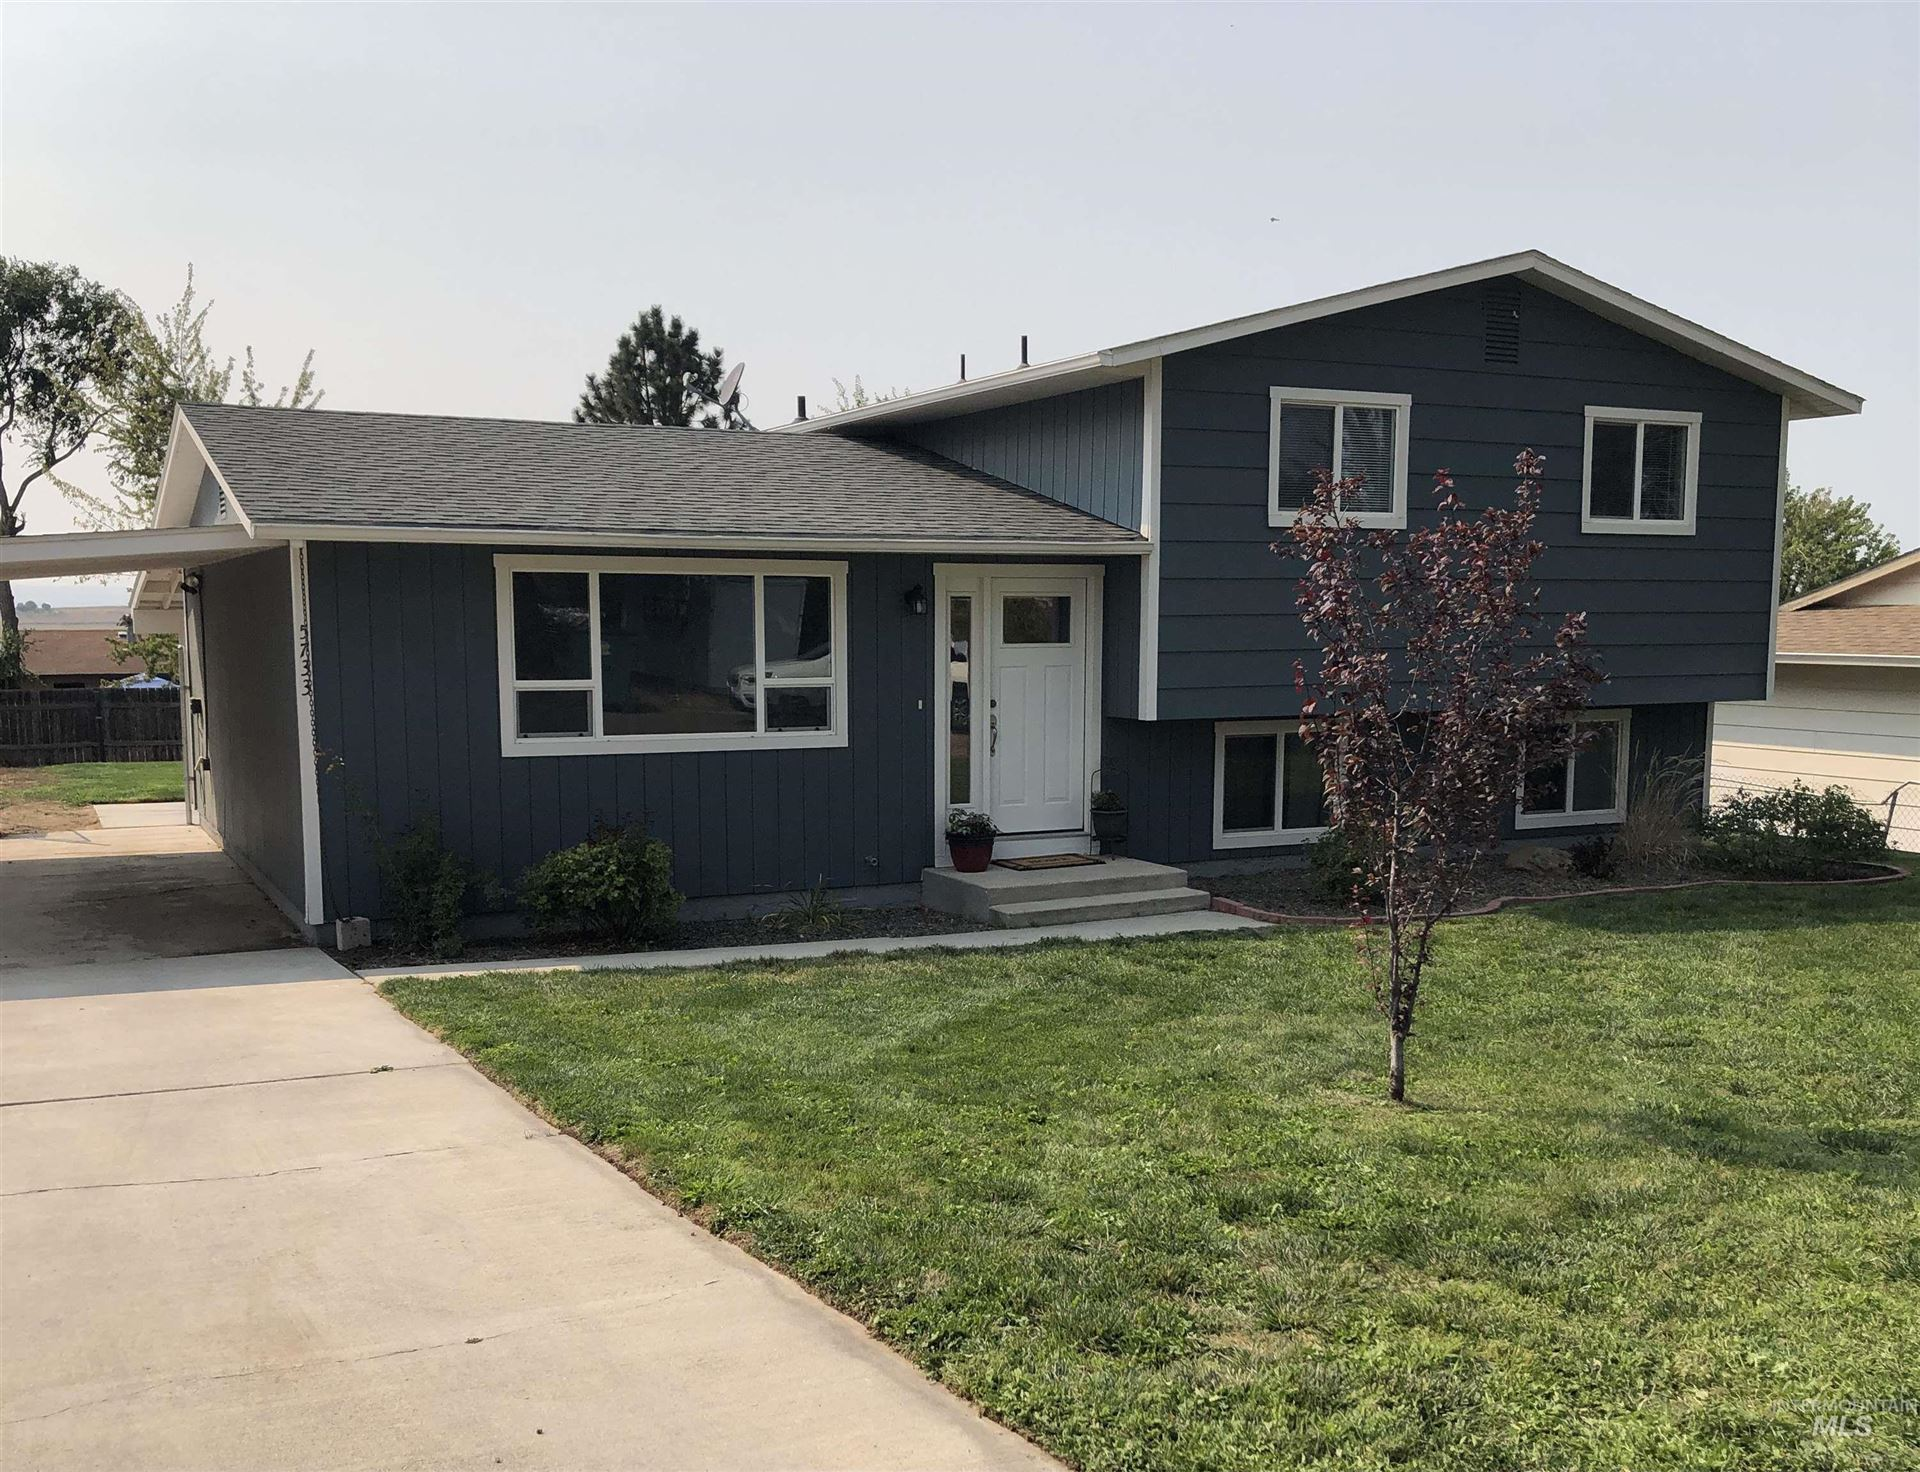 5733 Hillview Dr, Nampa, ID 83686 - MLS#: 98816499